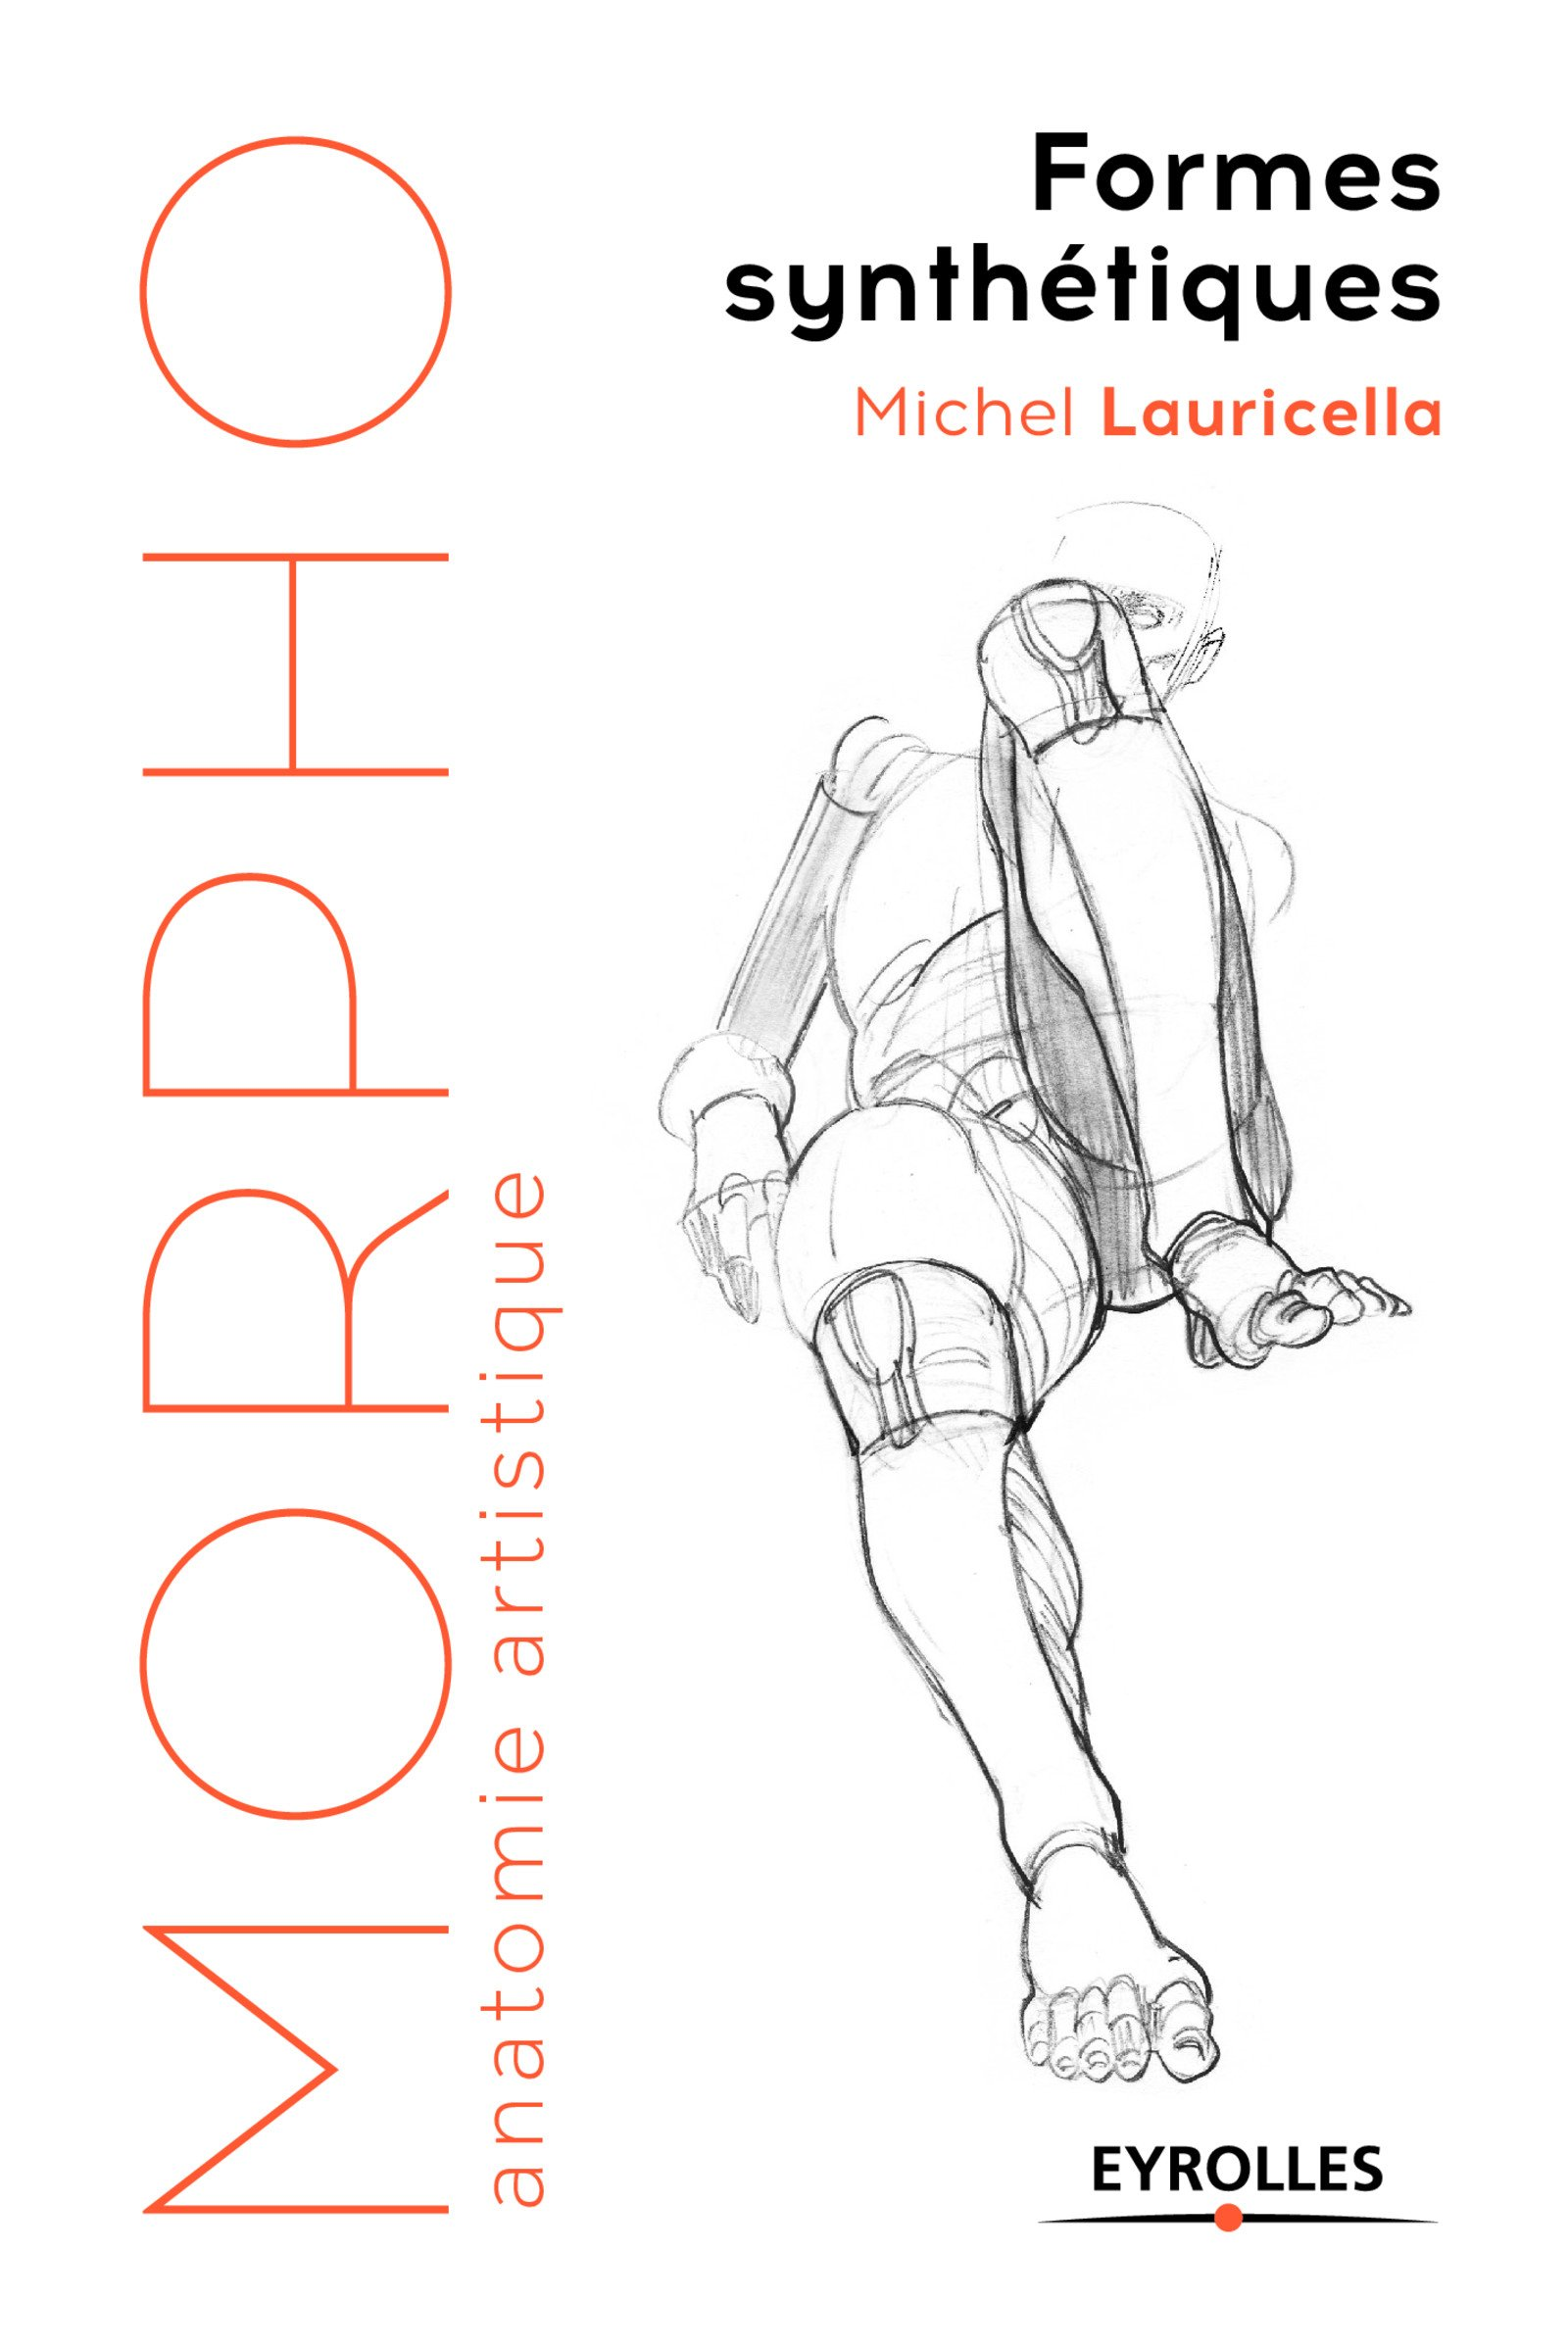 Morpho Formes synthétiques Poche – 21 septembre 2017 Michel Lauricella Eyrolles 2212673531 Anatomie